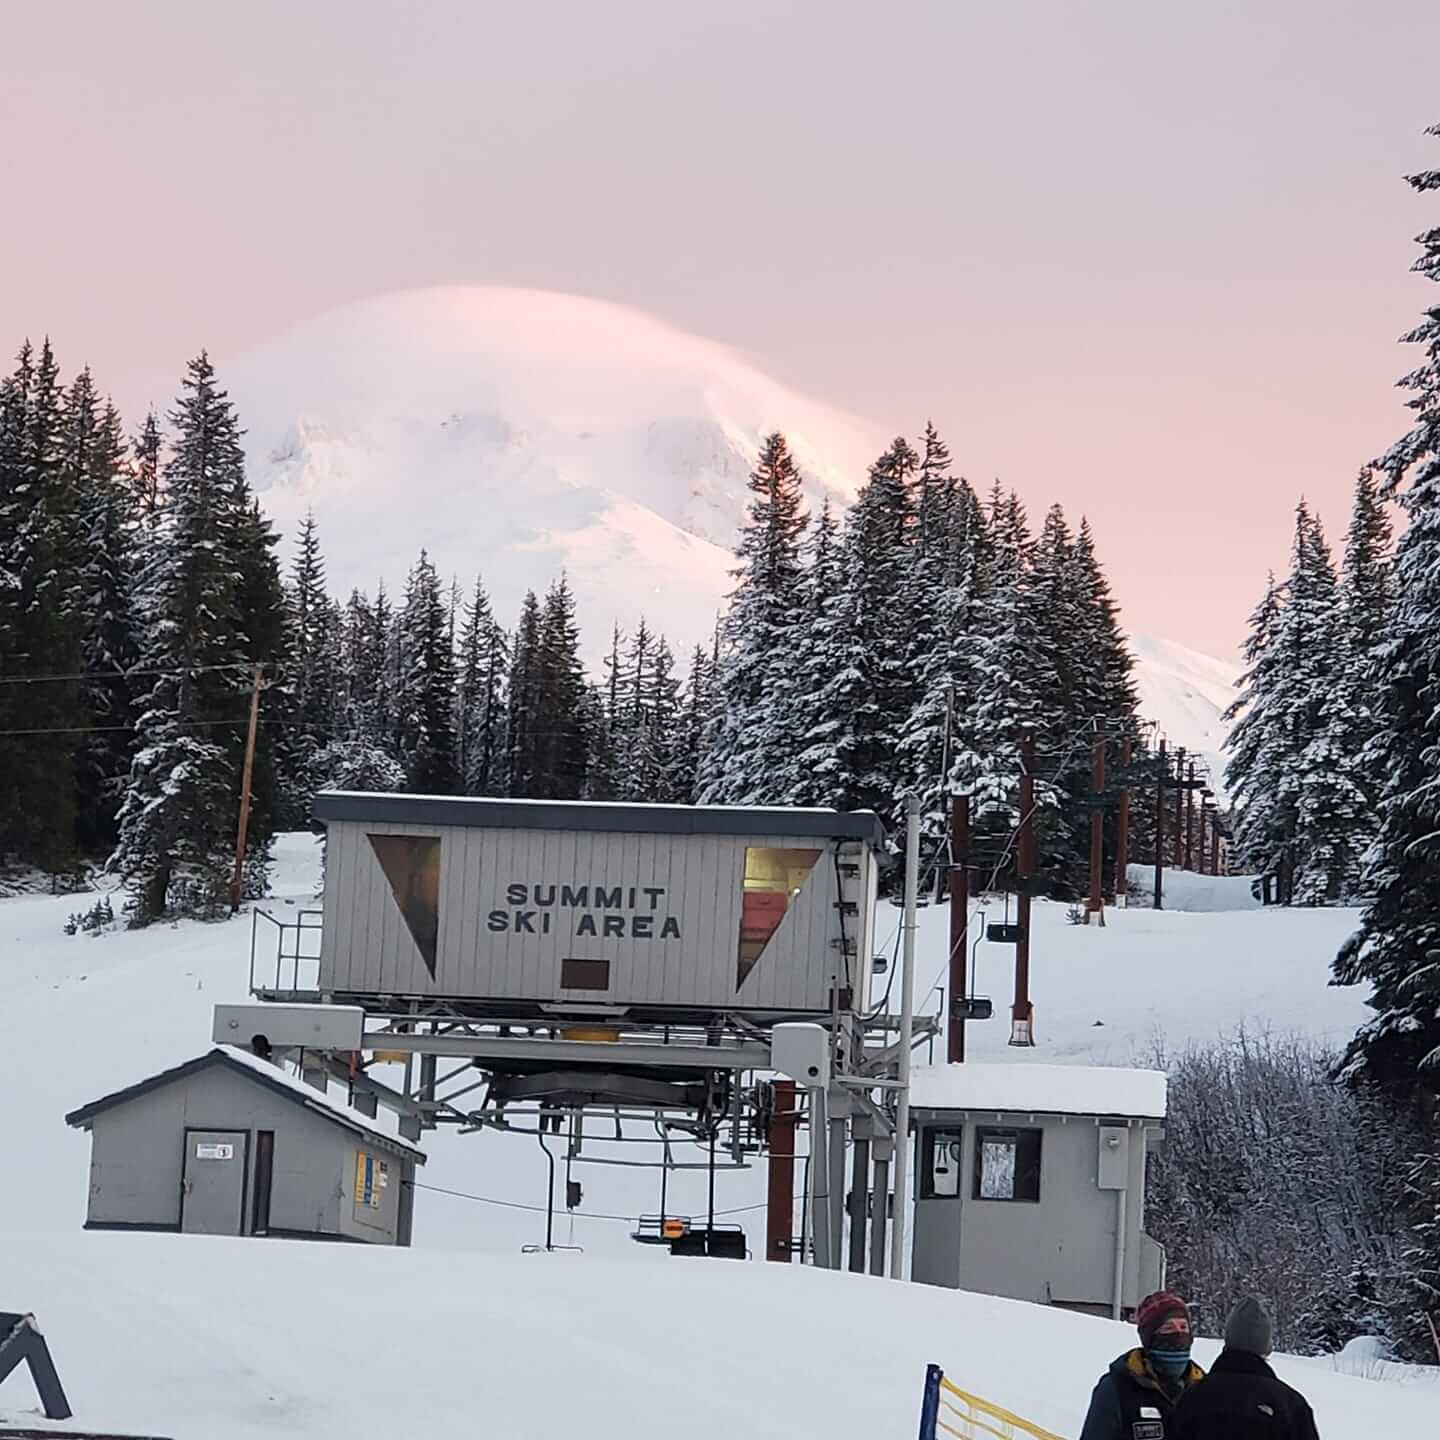 2nd oldest ski area in US is one of the resorts for skiing near Portland Oregon